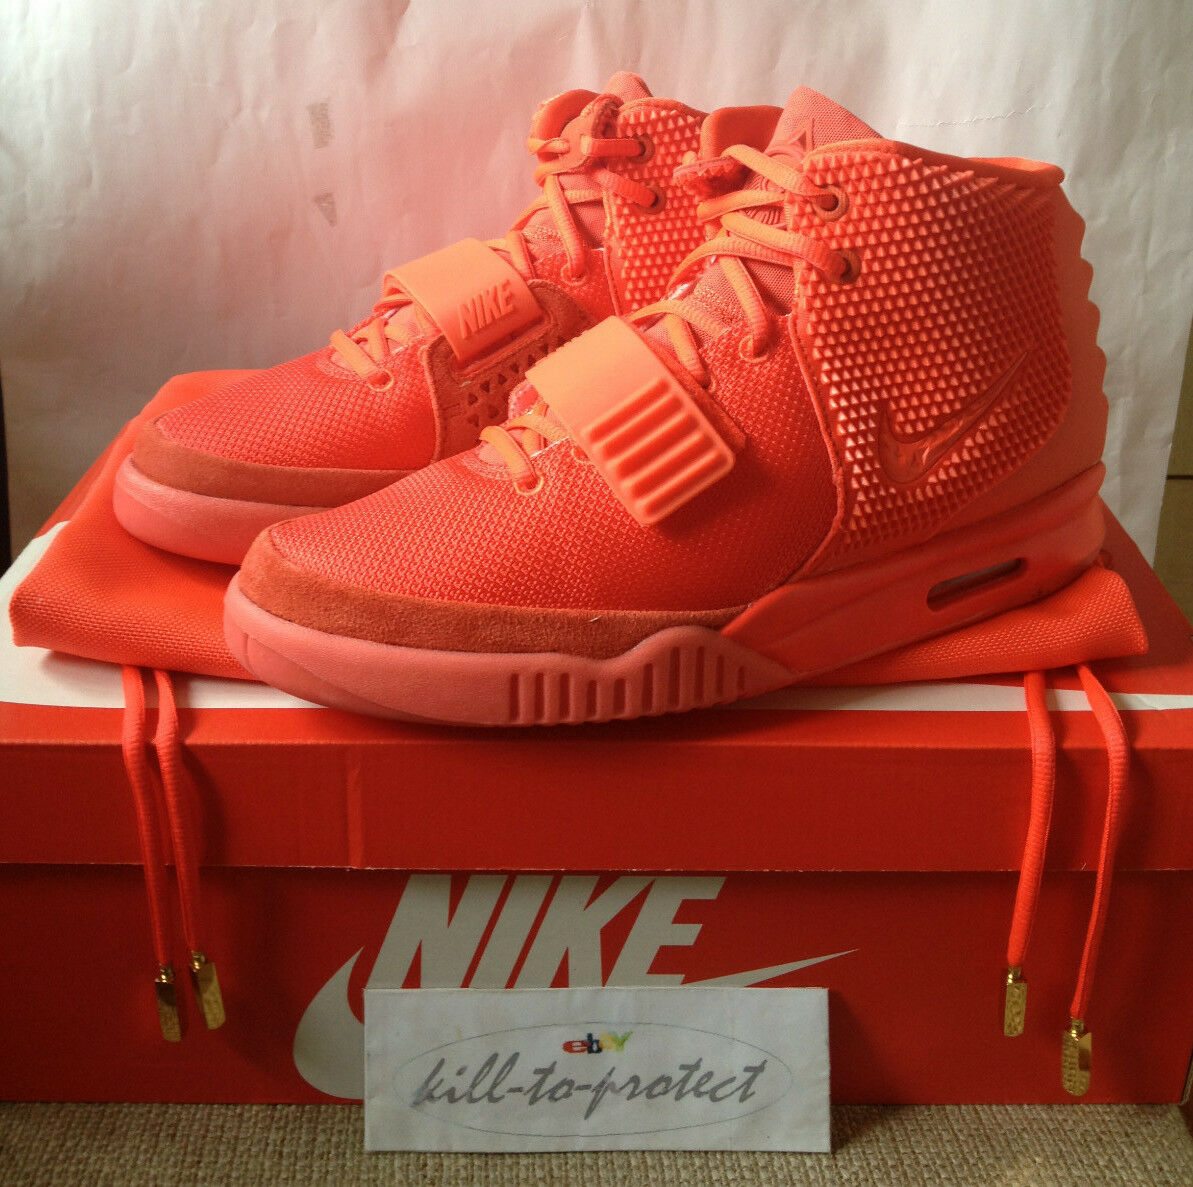 NIKE AIR YEEZY 2 RED OCTOBER Sz US7 UK6 KANYE WEST 508214-660 LEGIT+Receipt 2014